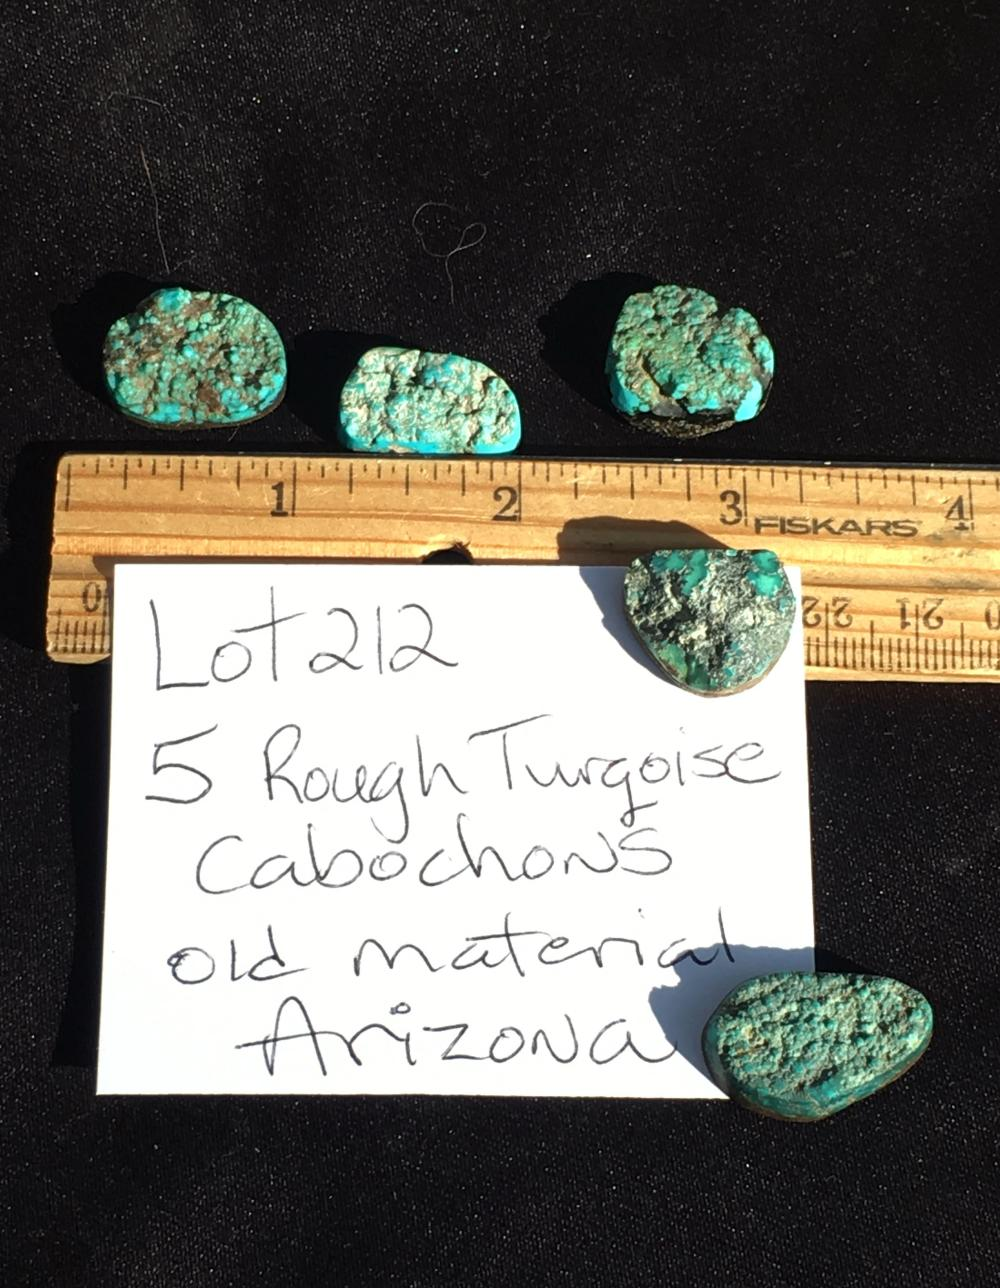 Lot 212: Turquoise, Rock, Crystal, Natural, Jewelry, Lapidary, Cabochon